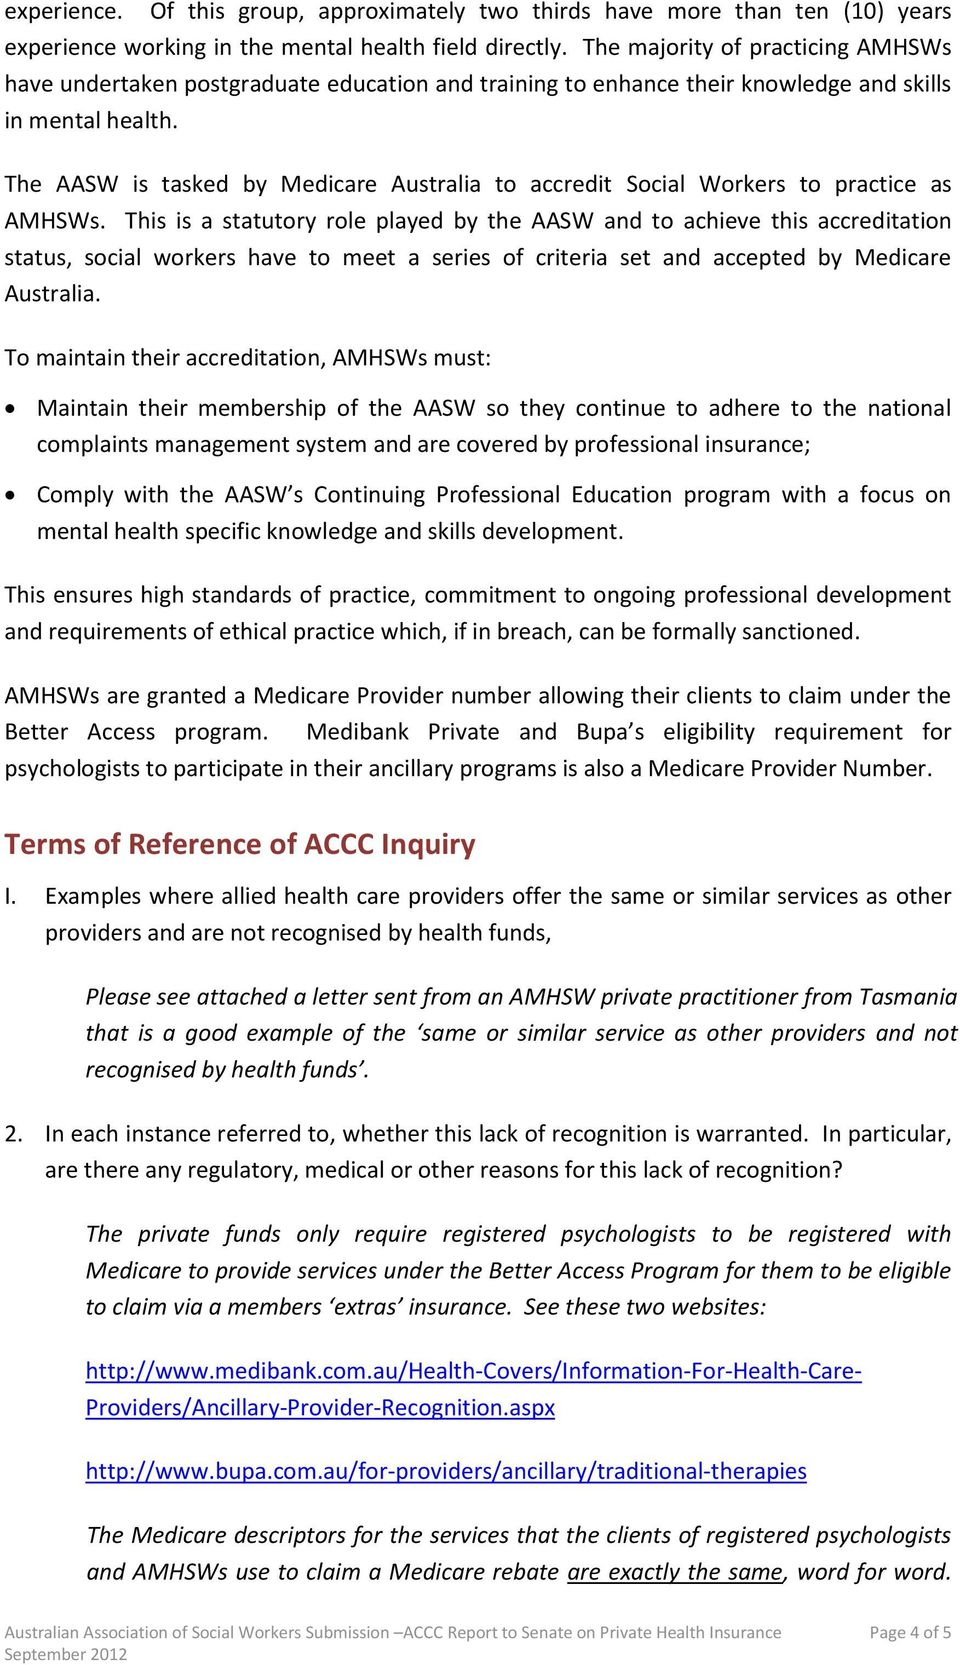 The AASW is tasked by Medicare Australia to accredit Social Workers to practice as AMHSWs.